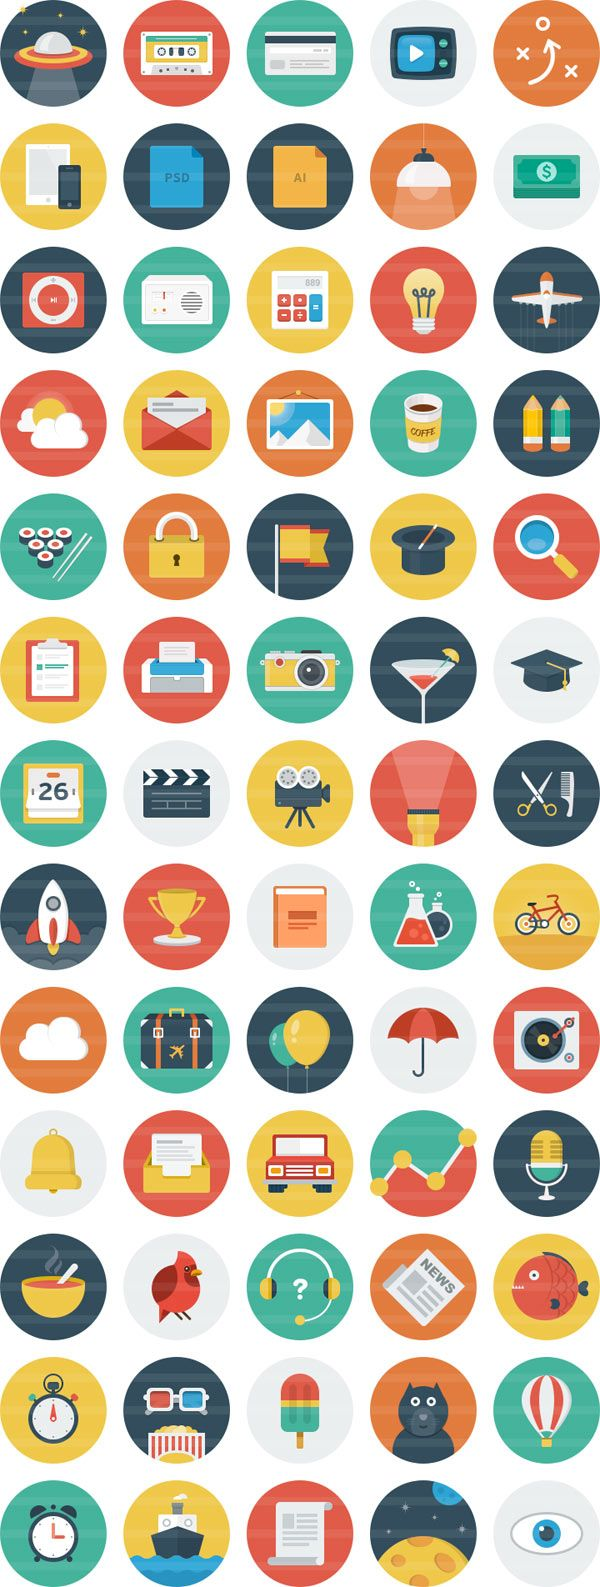 Ballicons – an Original Flat Icon Set for Download by DIRKPETZOLD